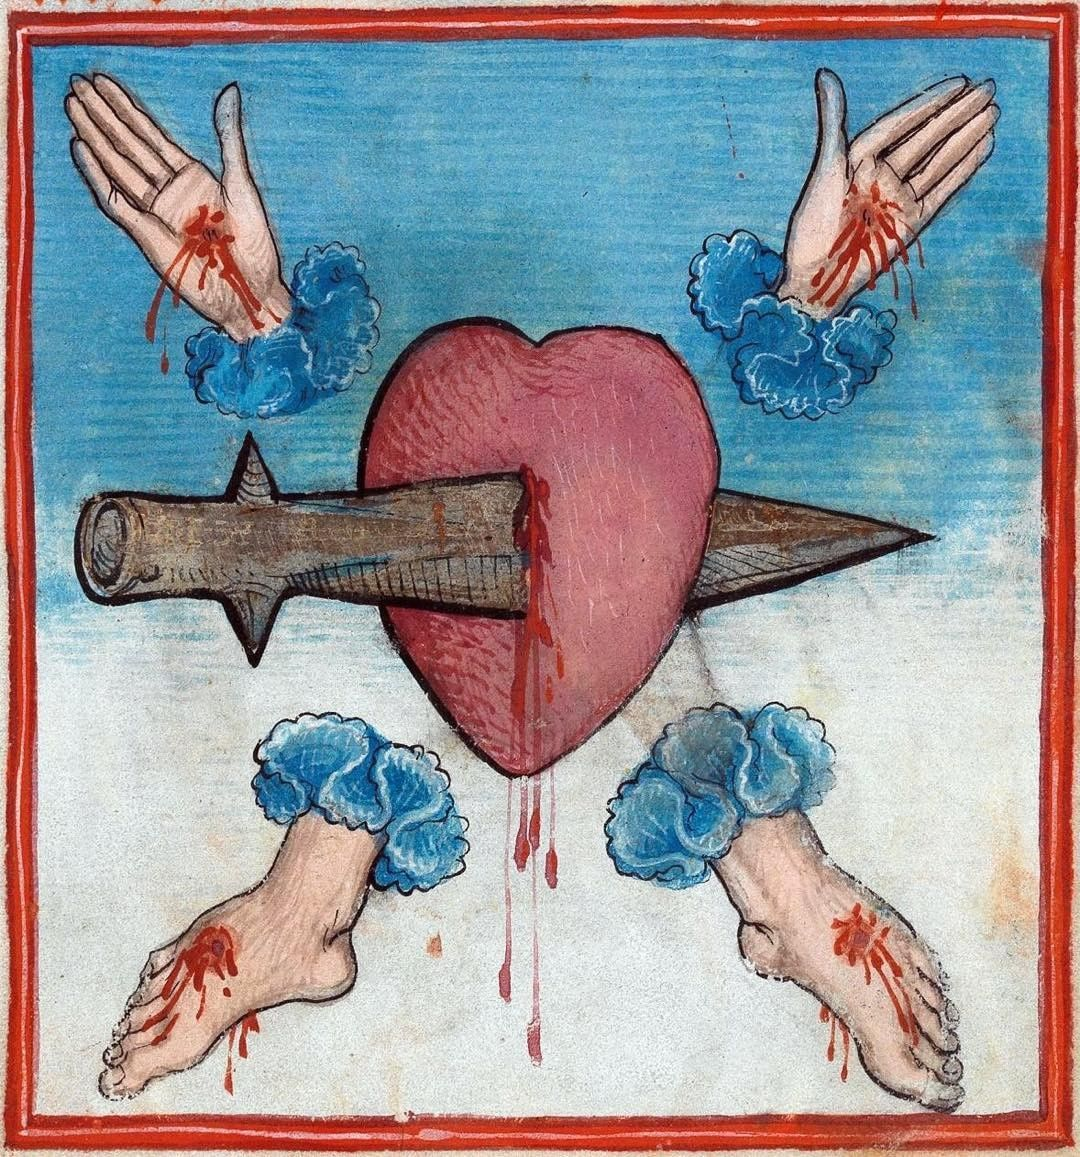 Five wounds prayer book upper swabia 1476 stuttgart medieval art five wounds prayer book upper swabia 1476 stuttgart wrttembergische biocorpaavc Image collections